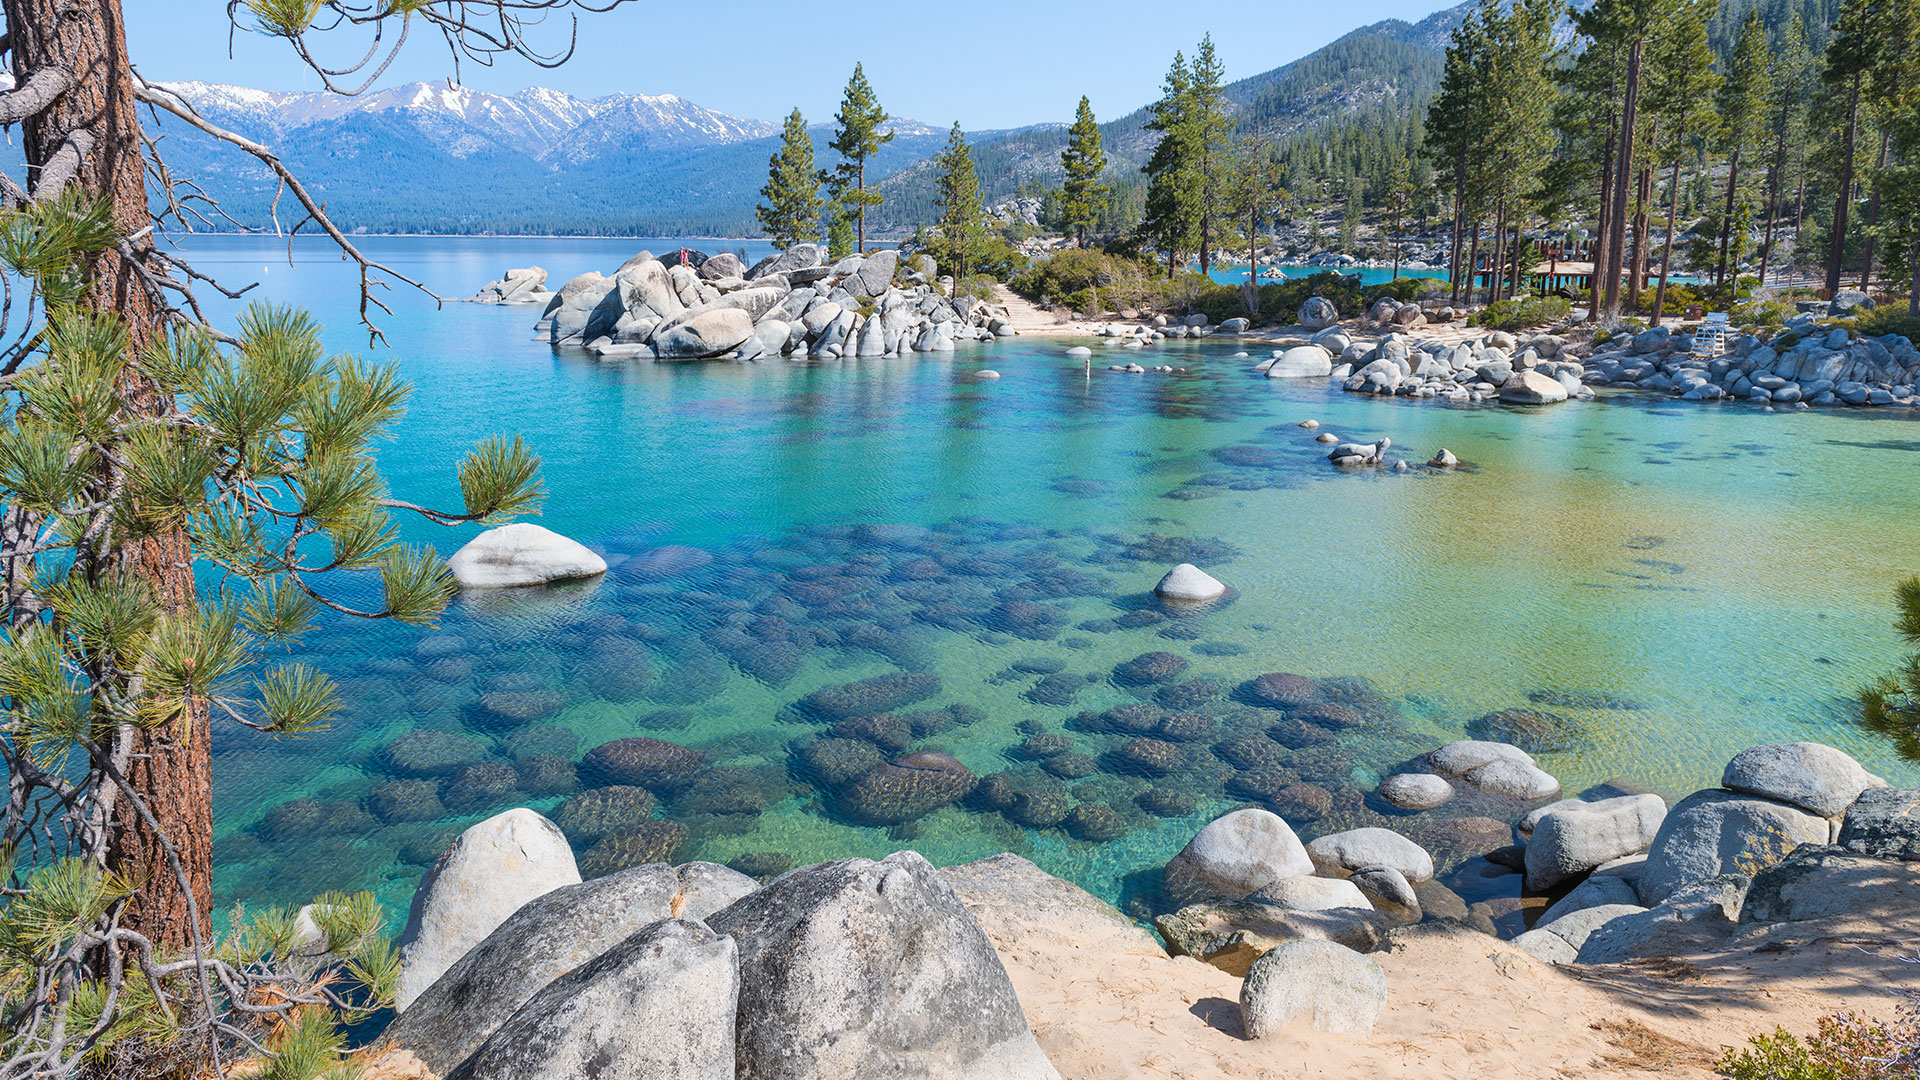 Lake Tahoe Travel Guide For First Time Visitors